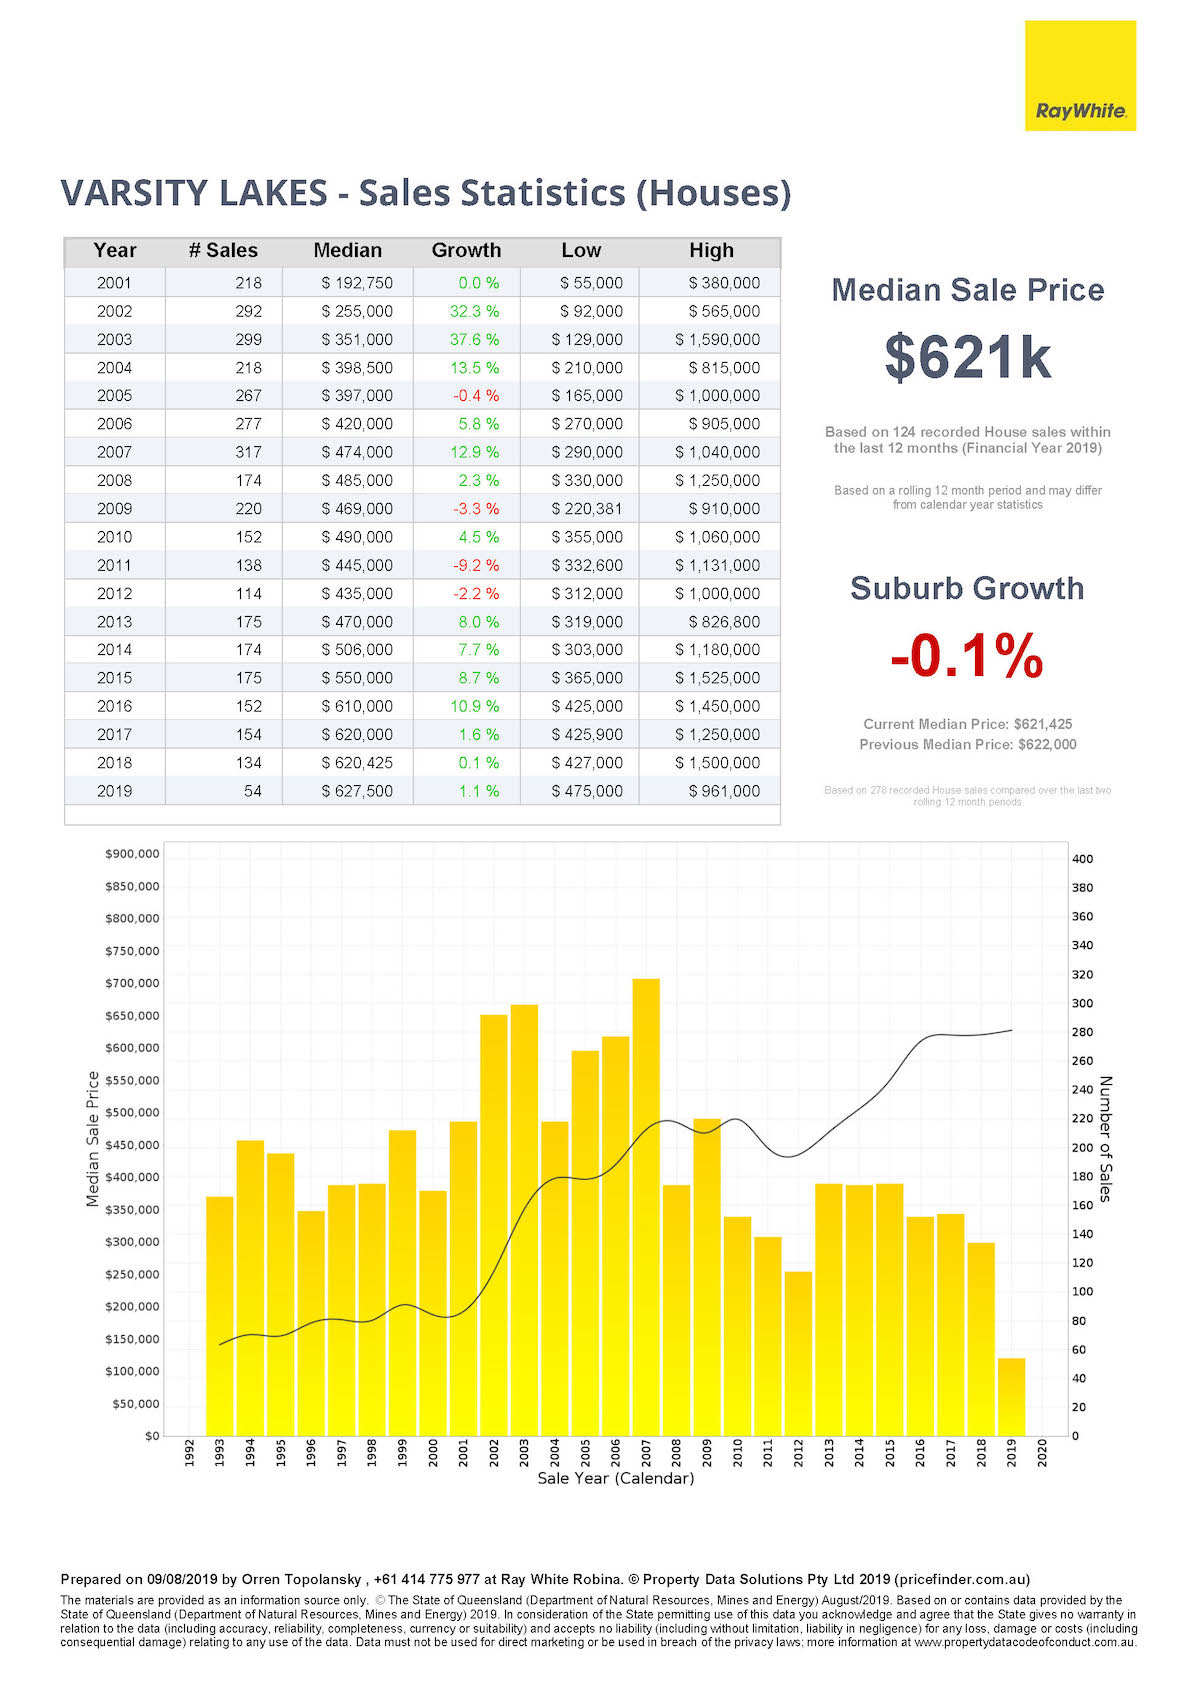 Sales statistics for houses in Varsity Lakes, Gold Coast, Queensland